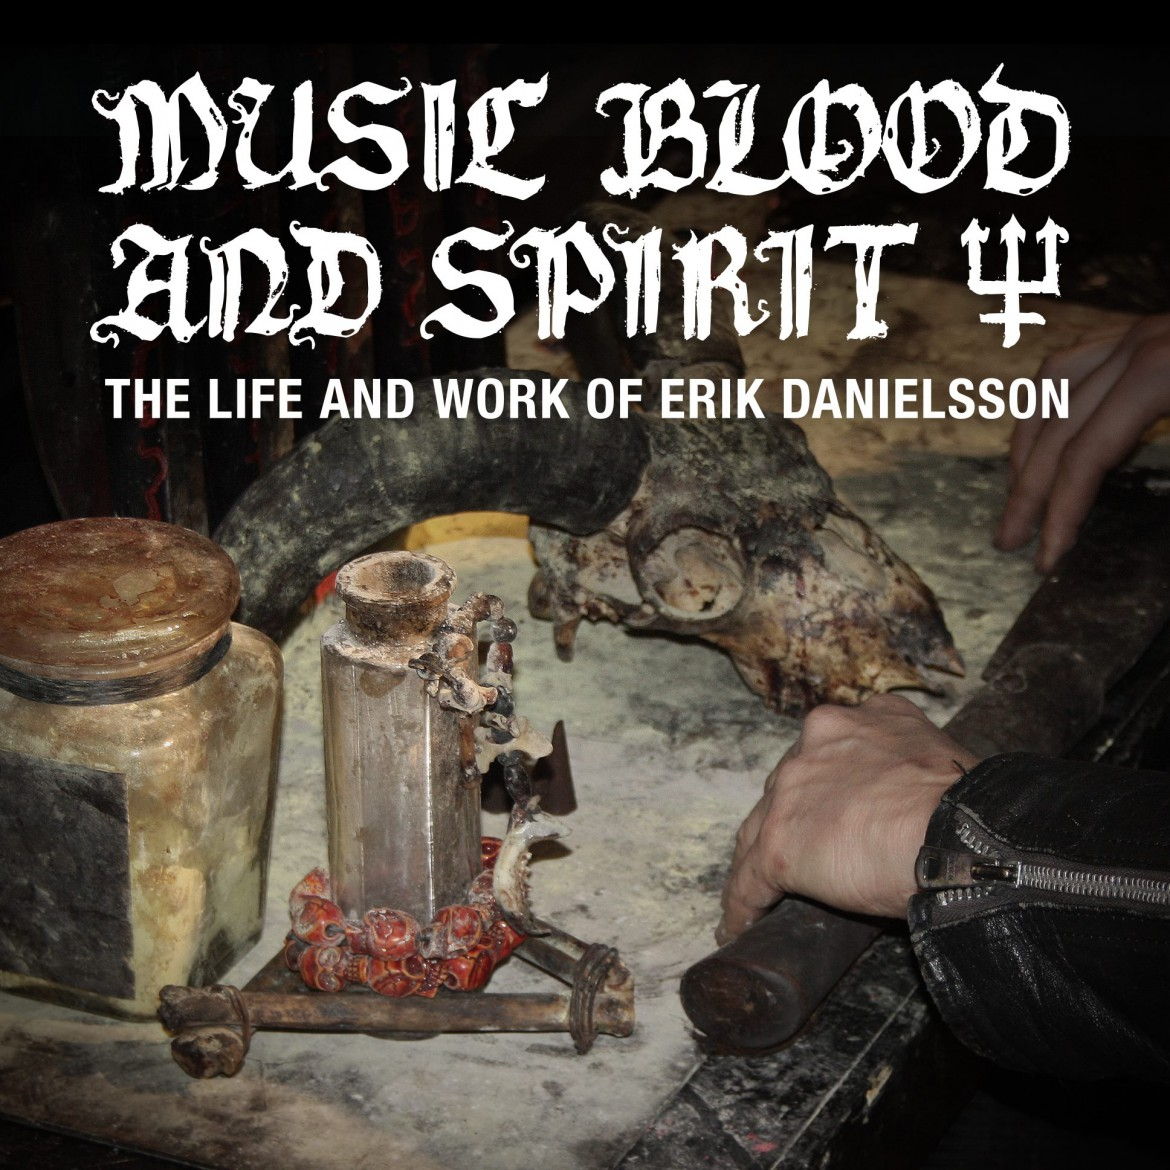 Watain - Erik Danielsson - Music, Blood and Spirit